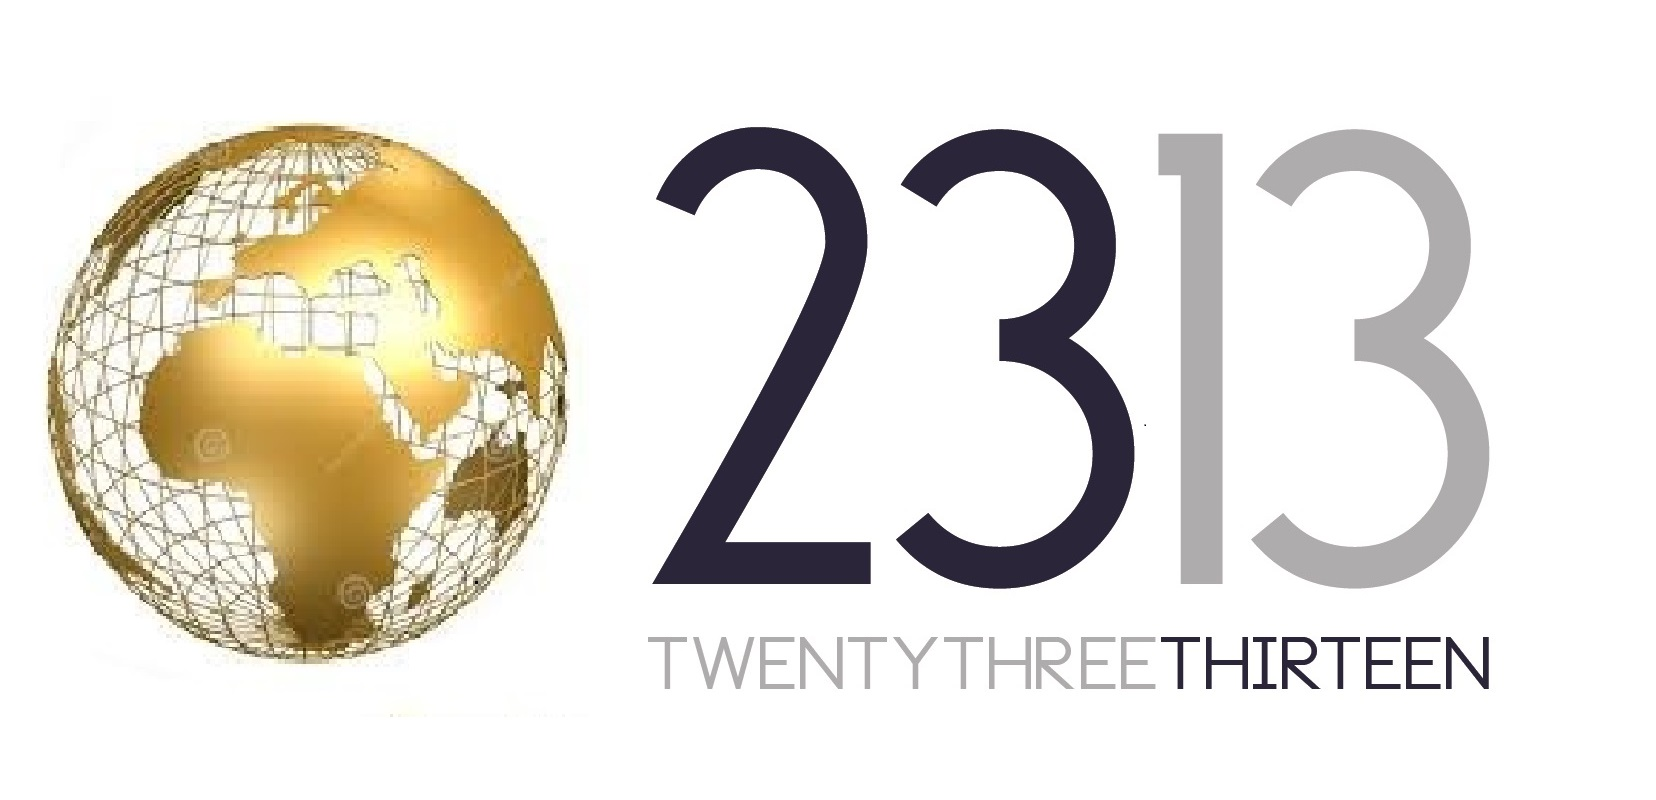 2313, Inc. - The Origin of 2313, Inc. - Pulling through crisis and looking  to serve others.